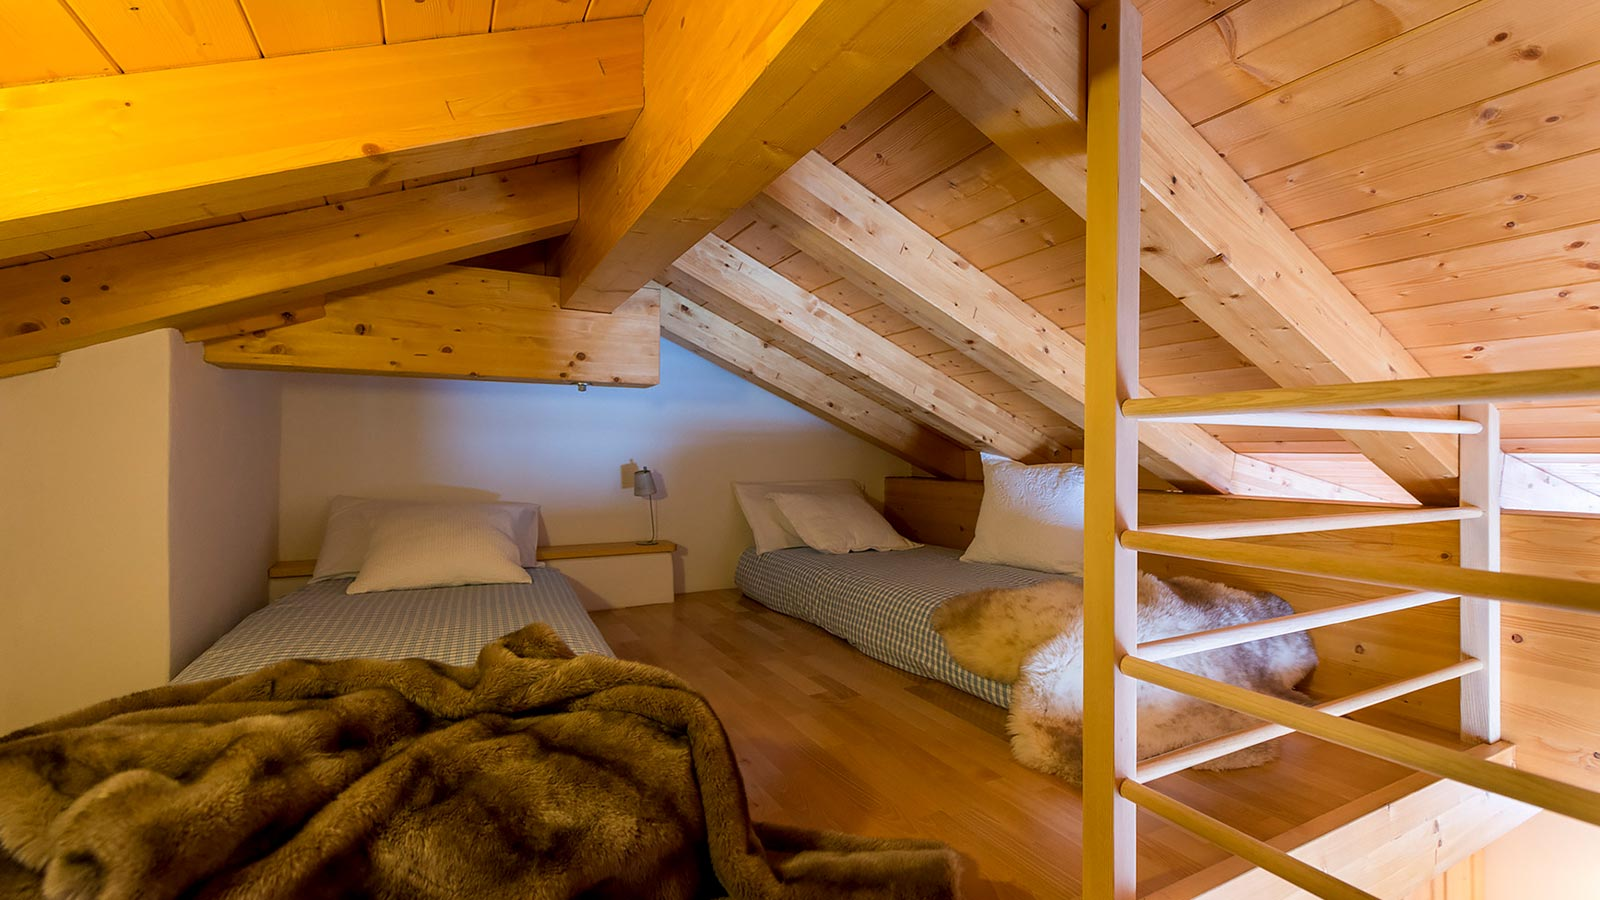 Detail of two single beds in the attic of a room